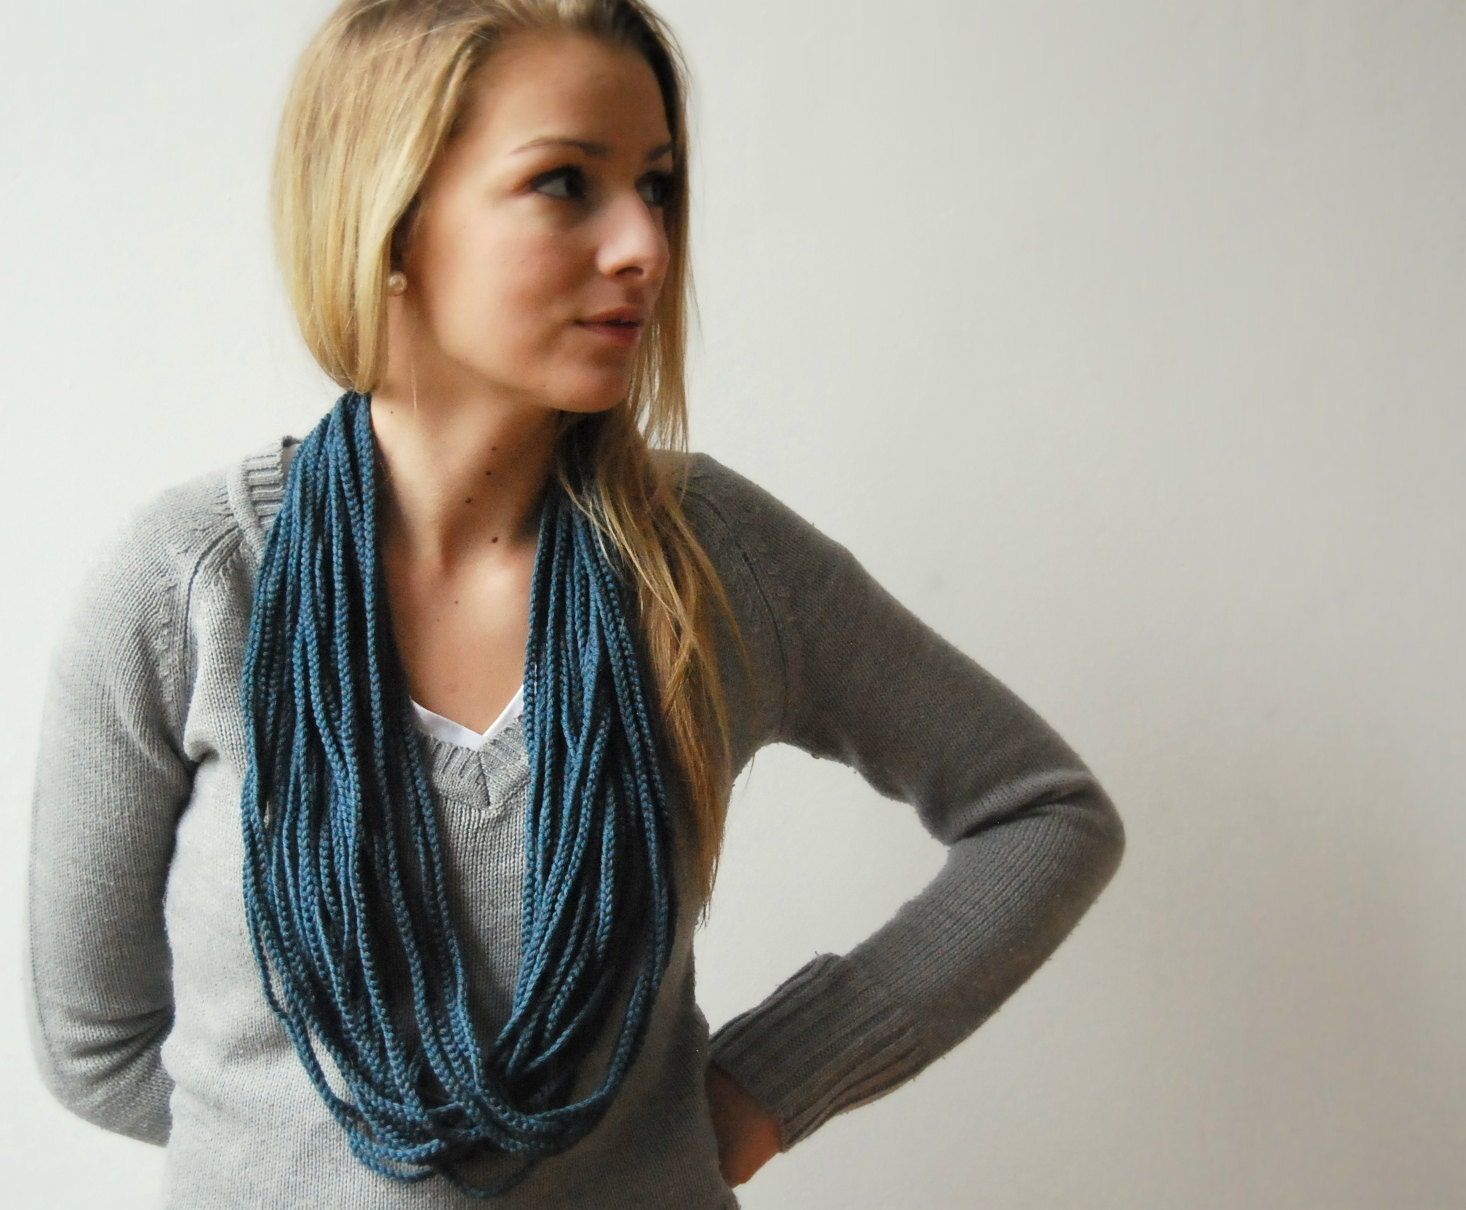 FREE SHIPPING - Crocheted Infinity Scarf in Colour of Stormy skies - SweetWhiteSheep